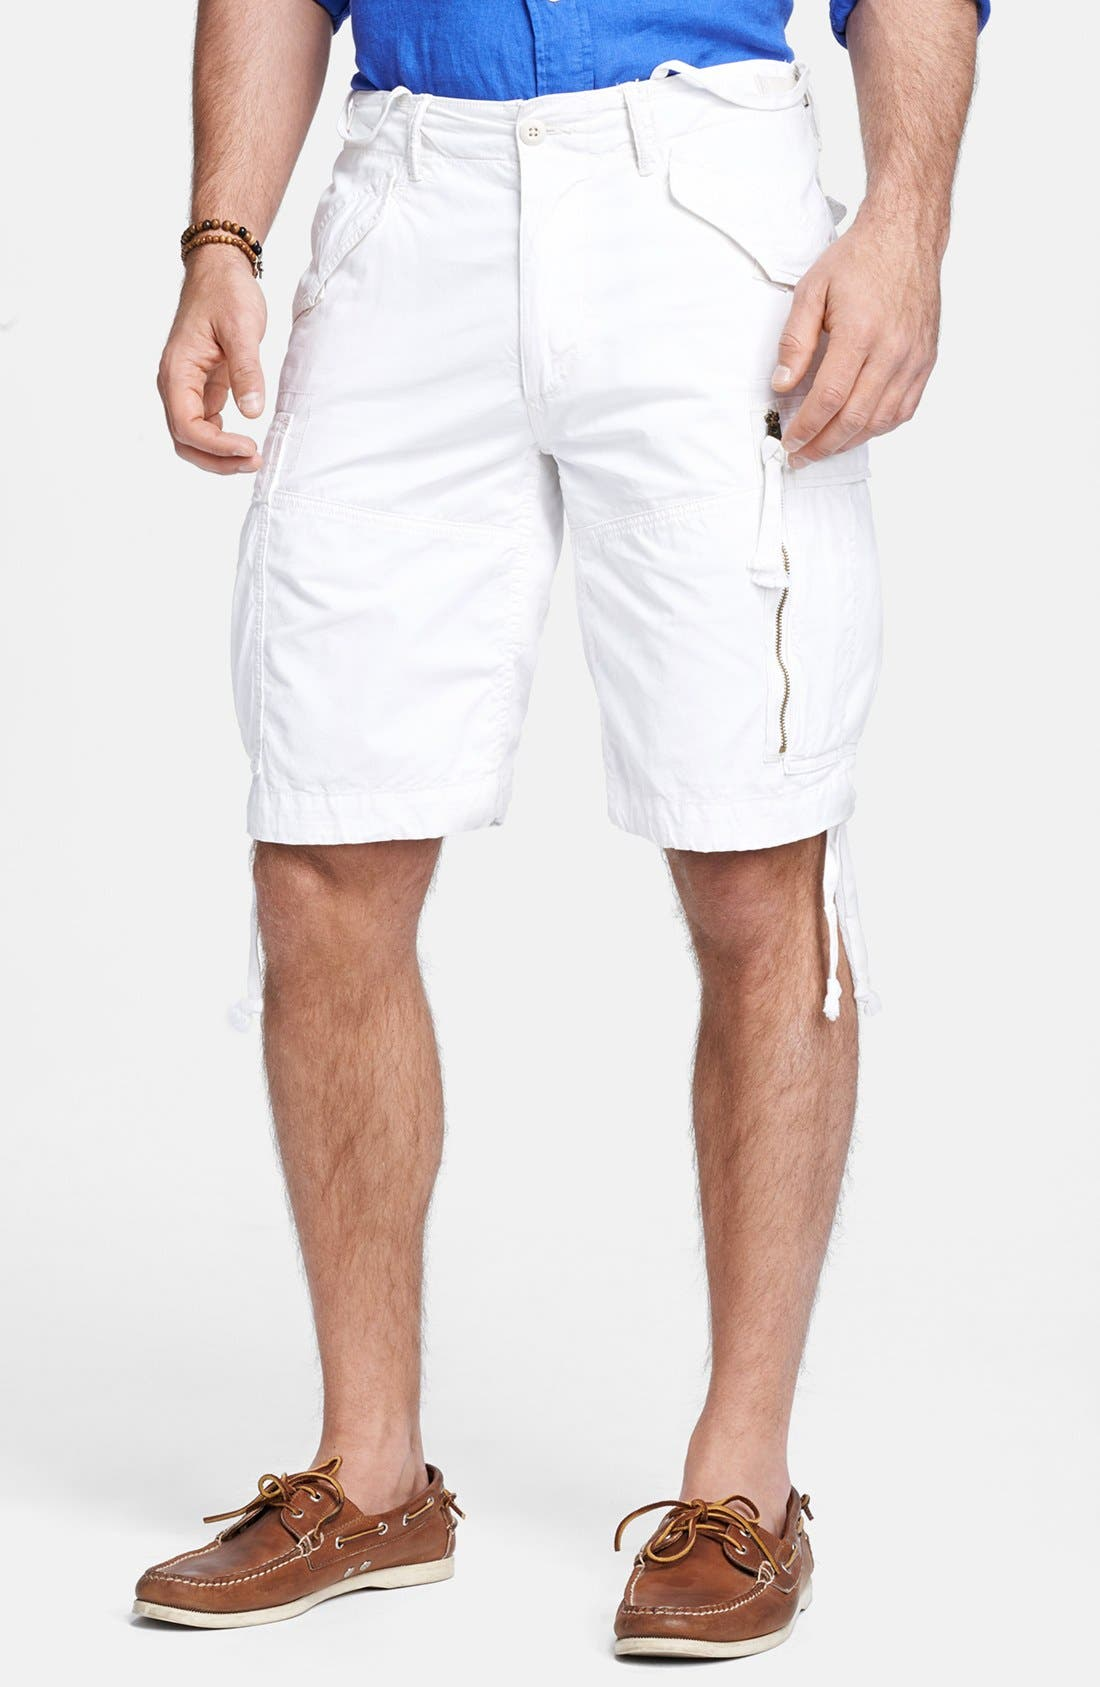 Alternate Image 1 Selected - Polo Ralph Lauren 'Carrier M45' Classic Fit Cargo Shorts